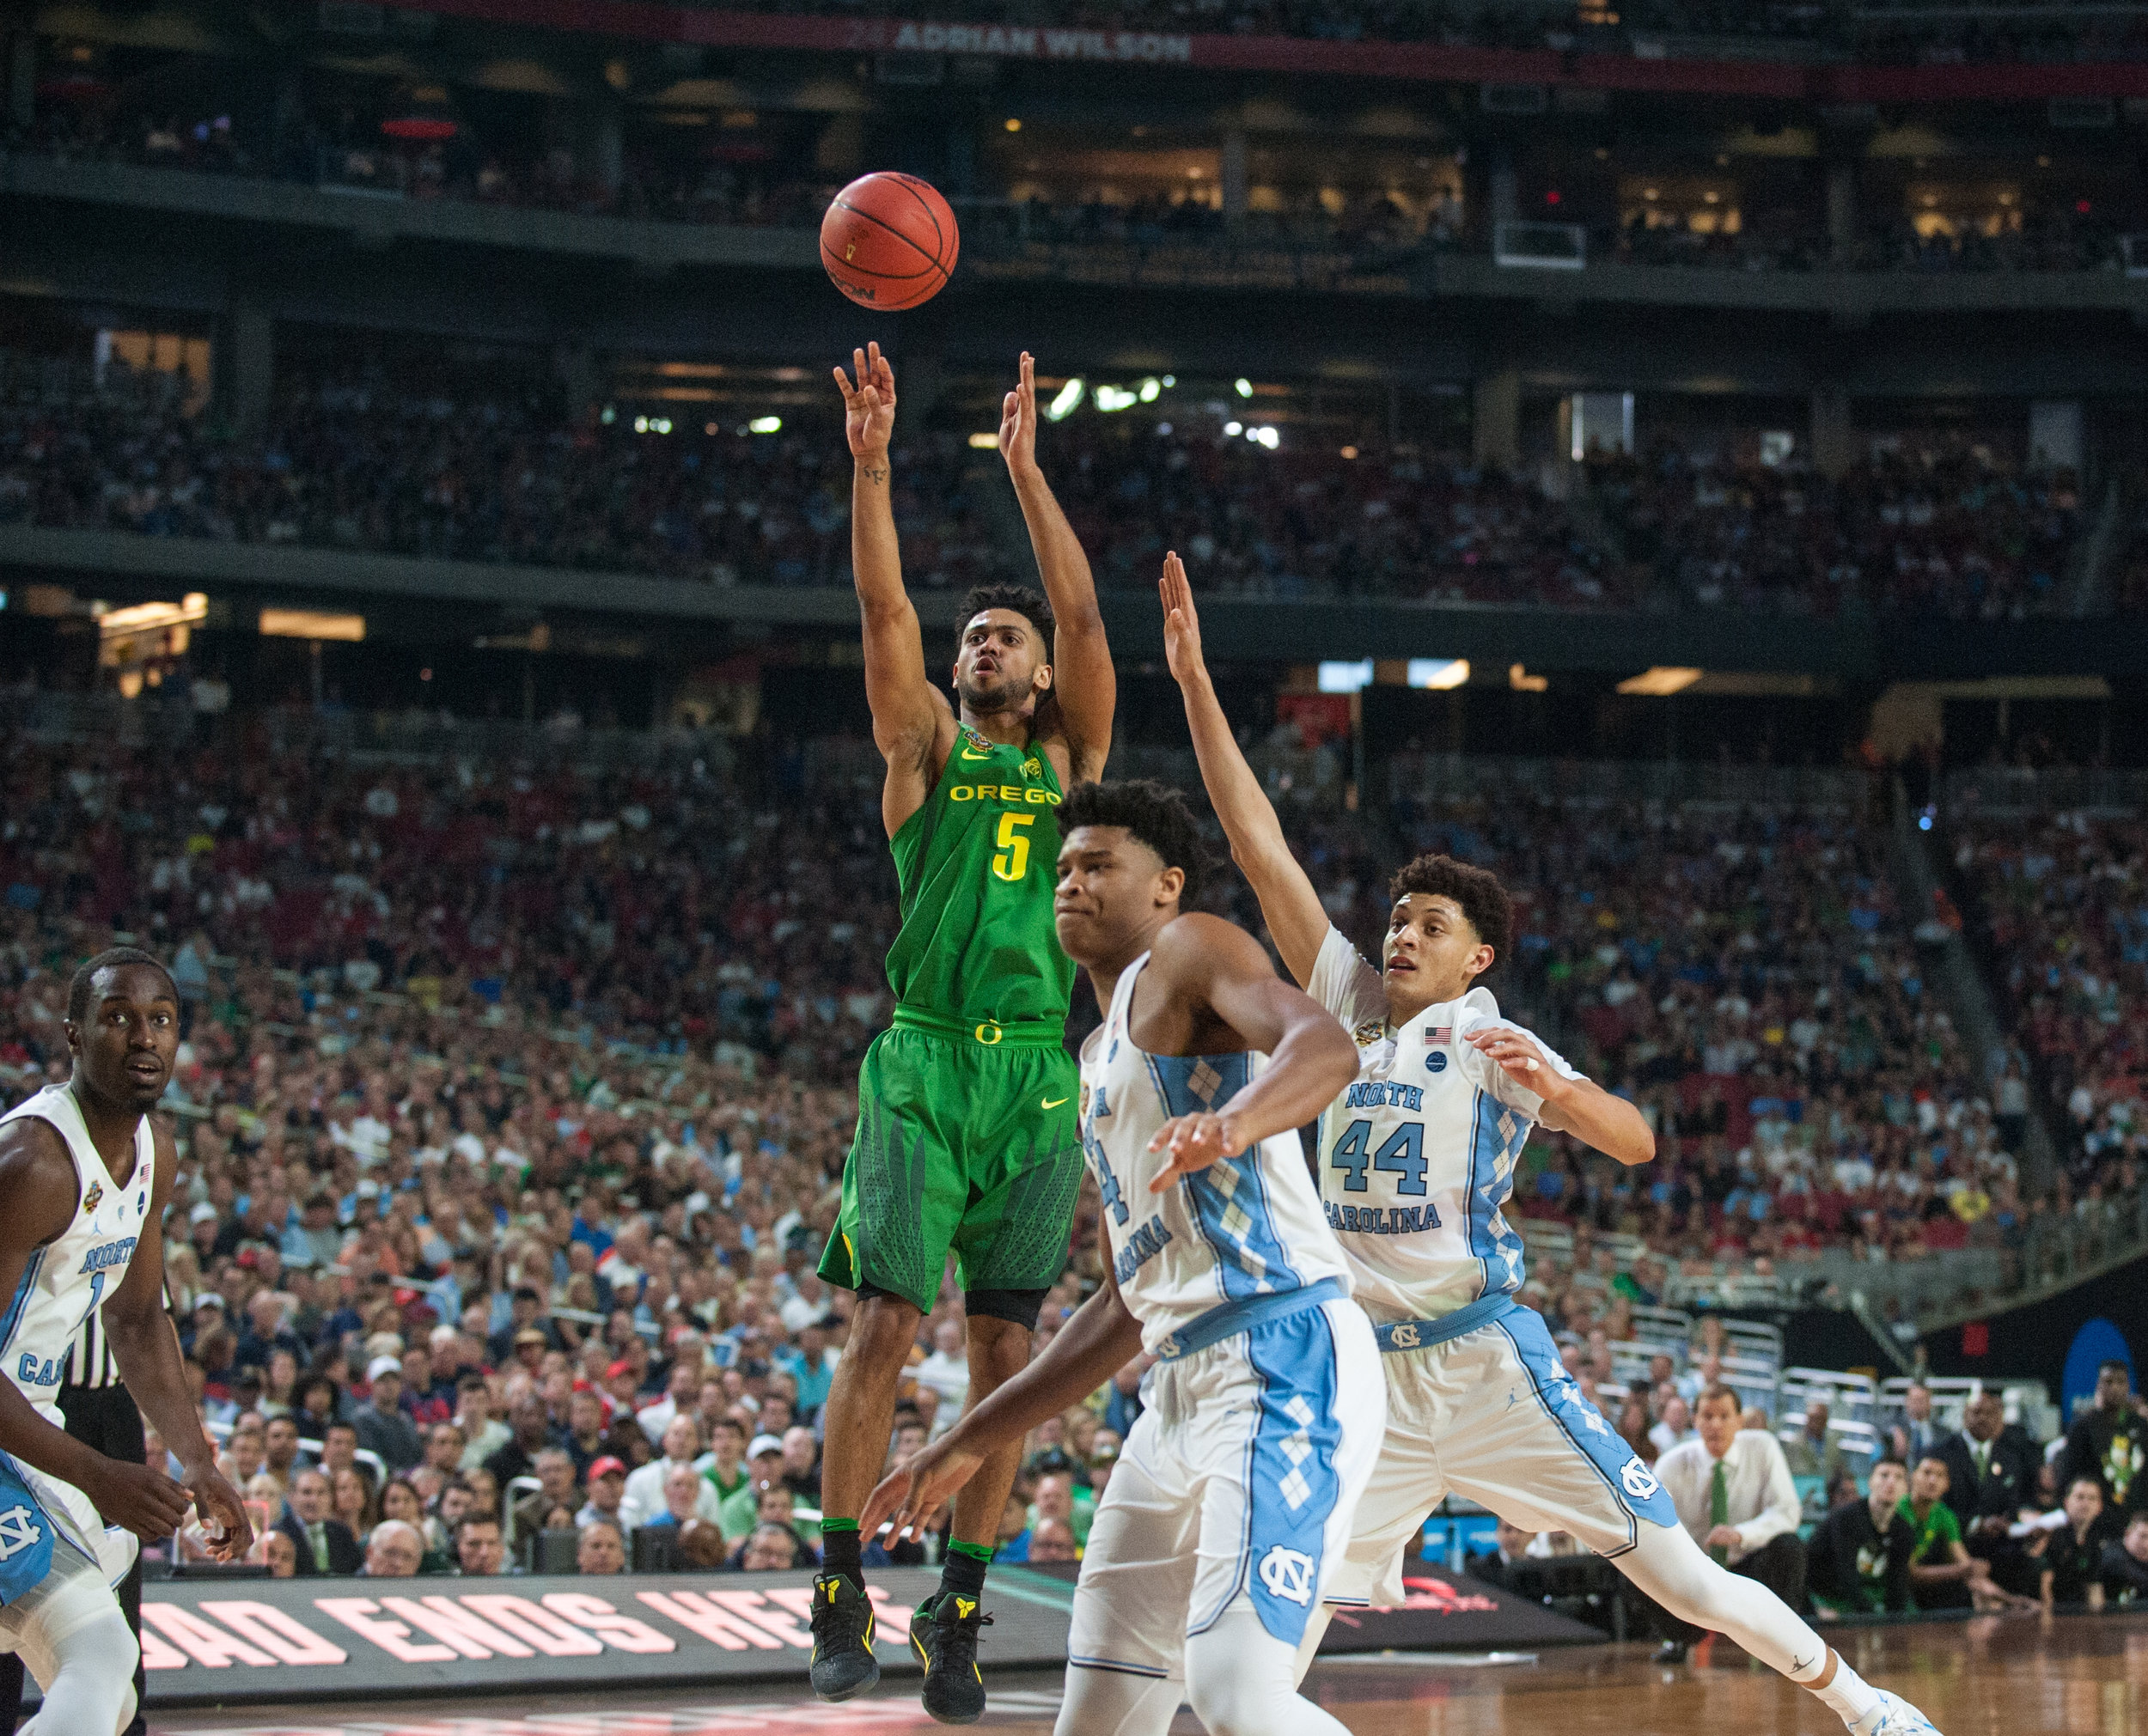 17.03.31.emg.an.final.four.oregon.vs.north.carolina-26.jpg